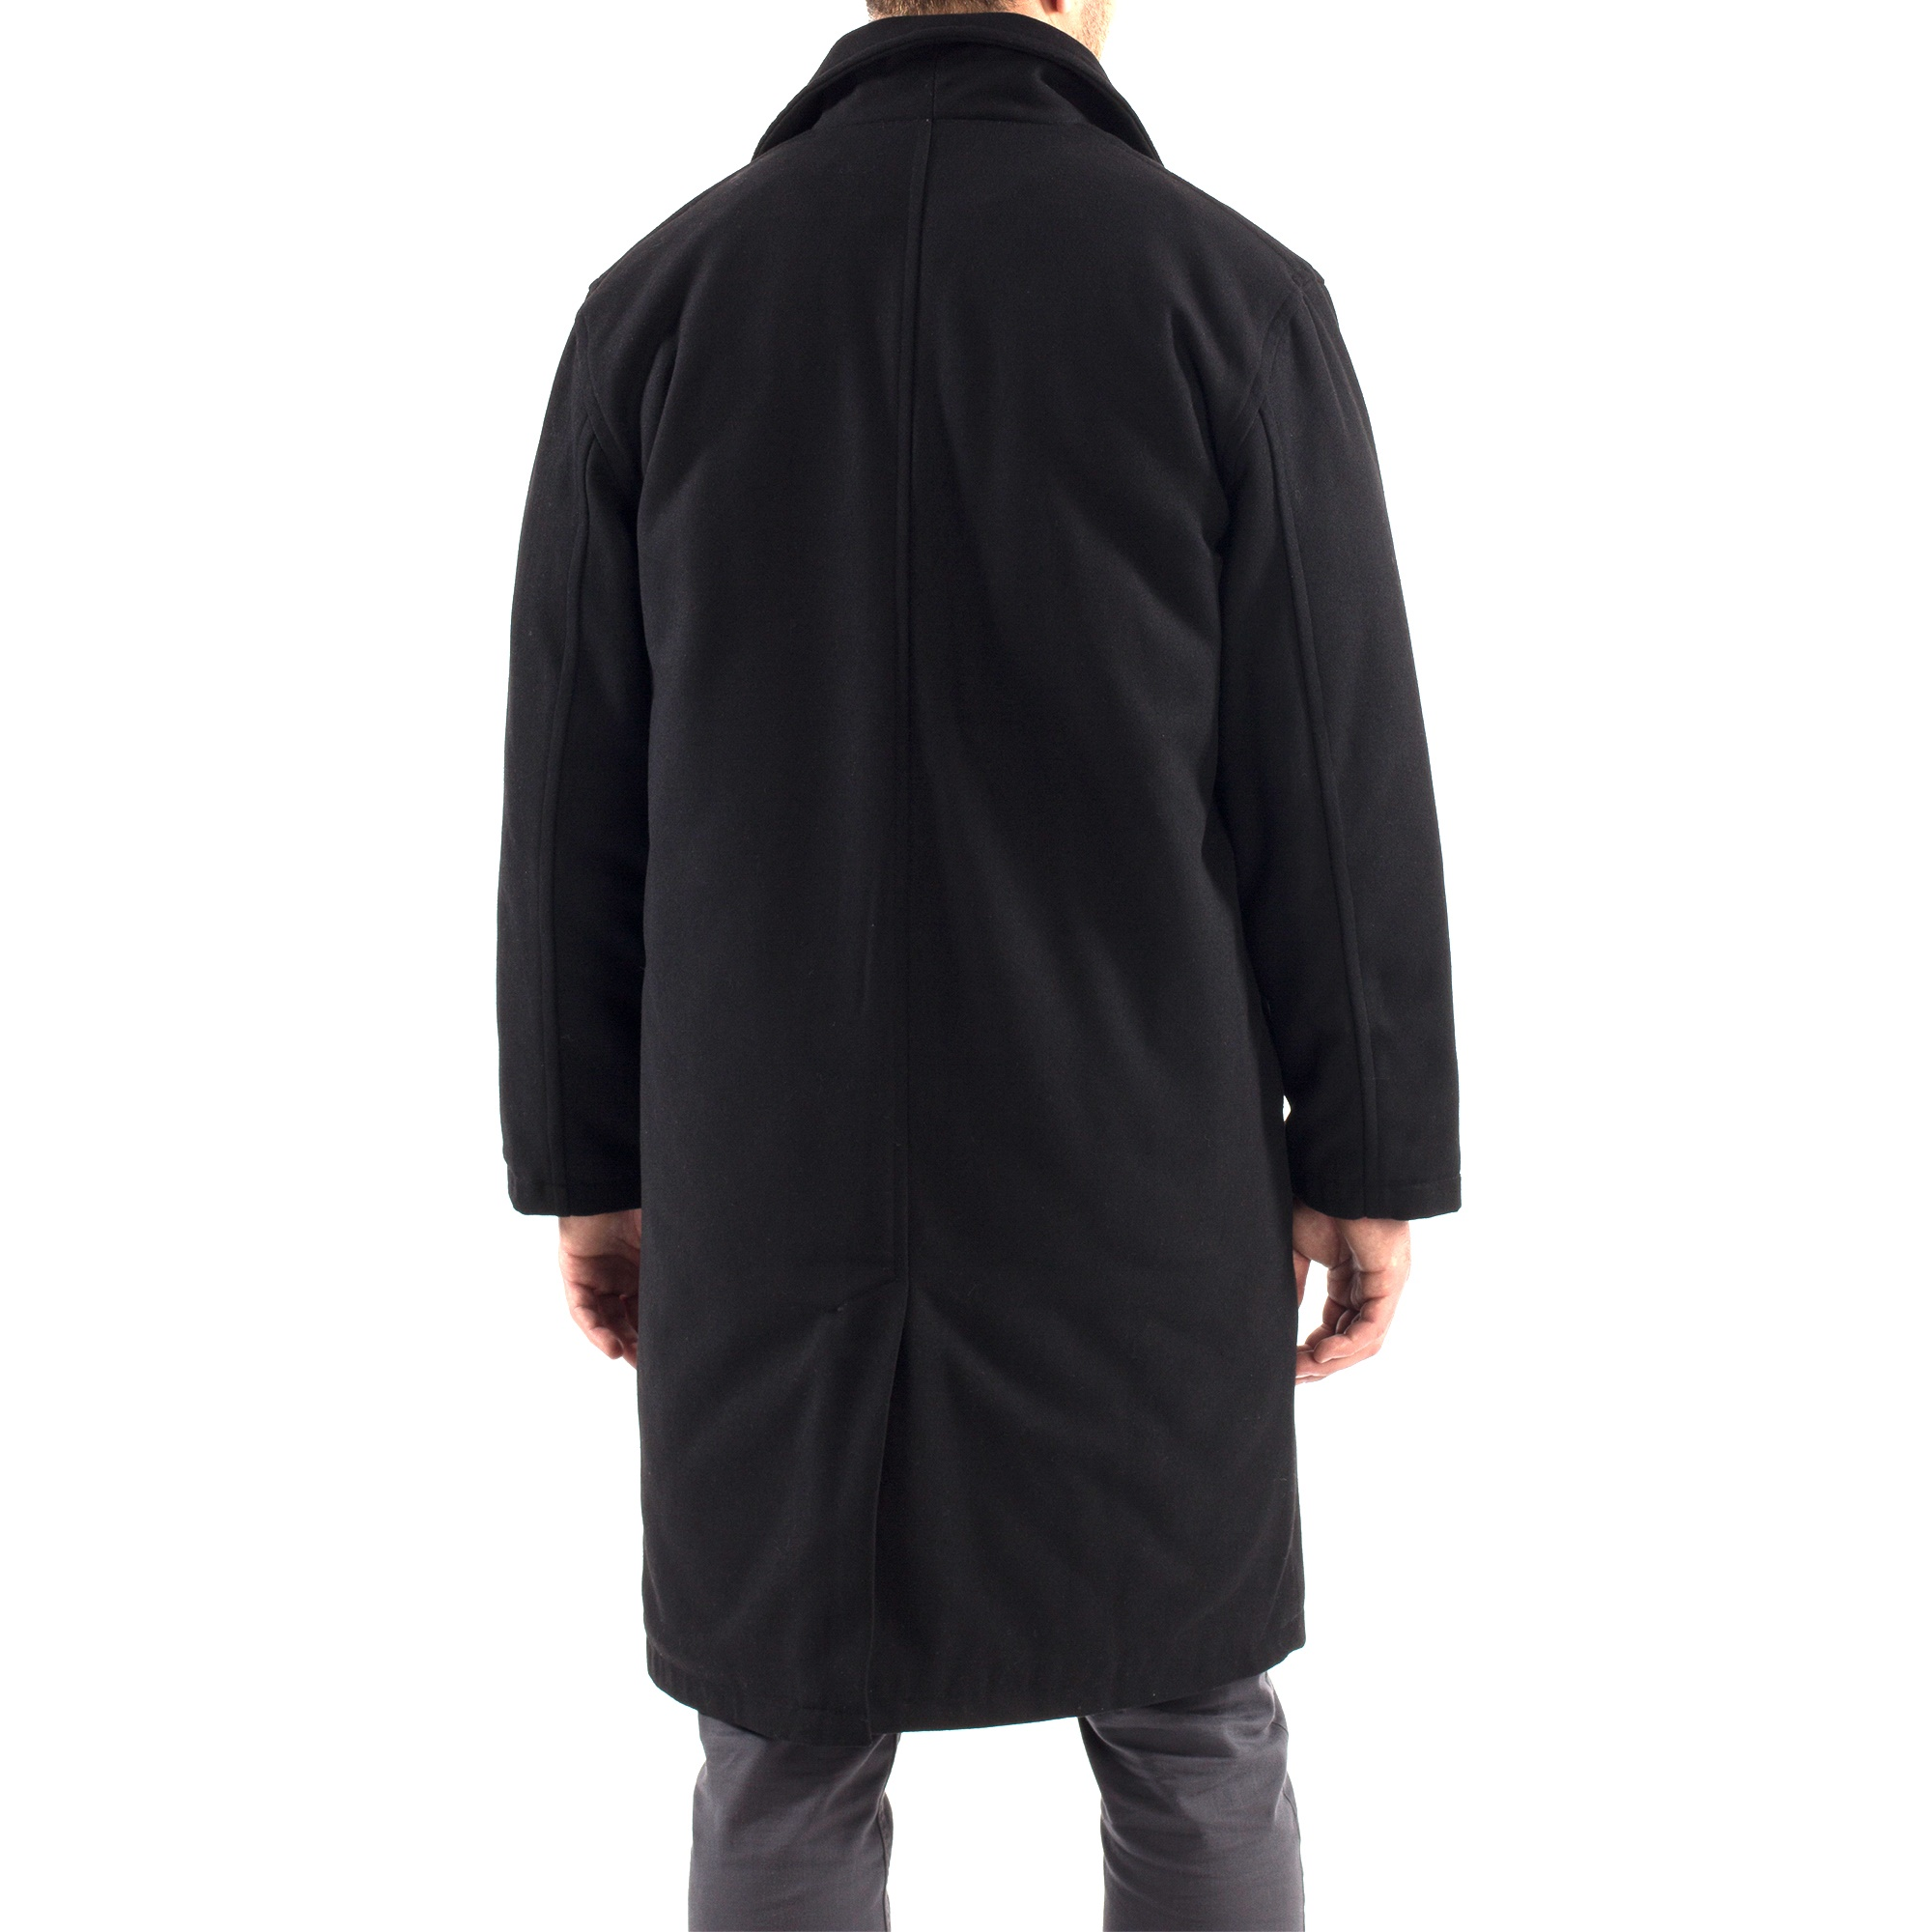 Alpine-Swiss-Mens-Zach-Knee-Length-Jacket-Top-Coat-Trench-Wool-Blend-Overcoat thumbnail 19